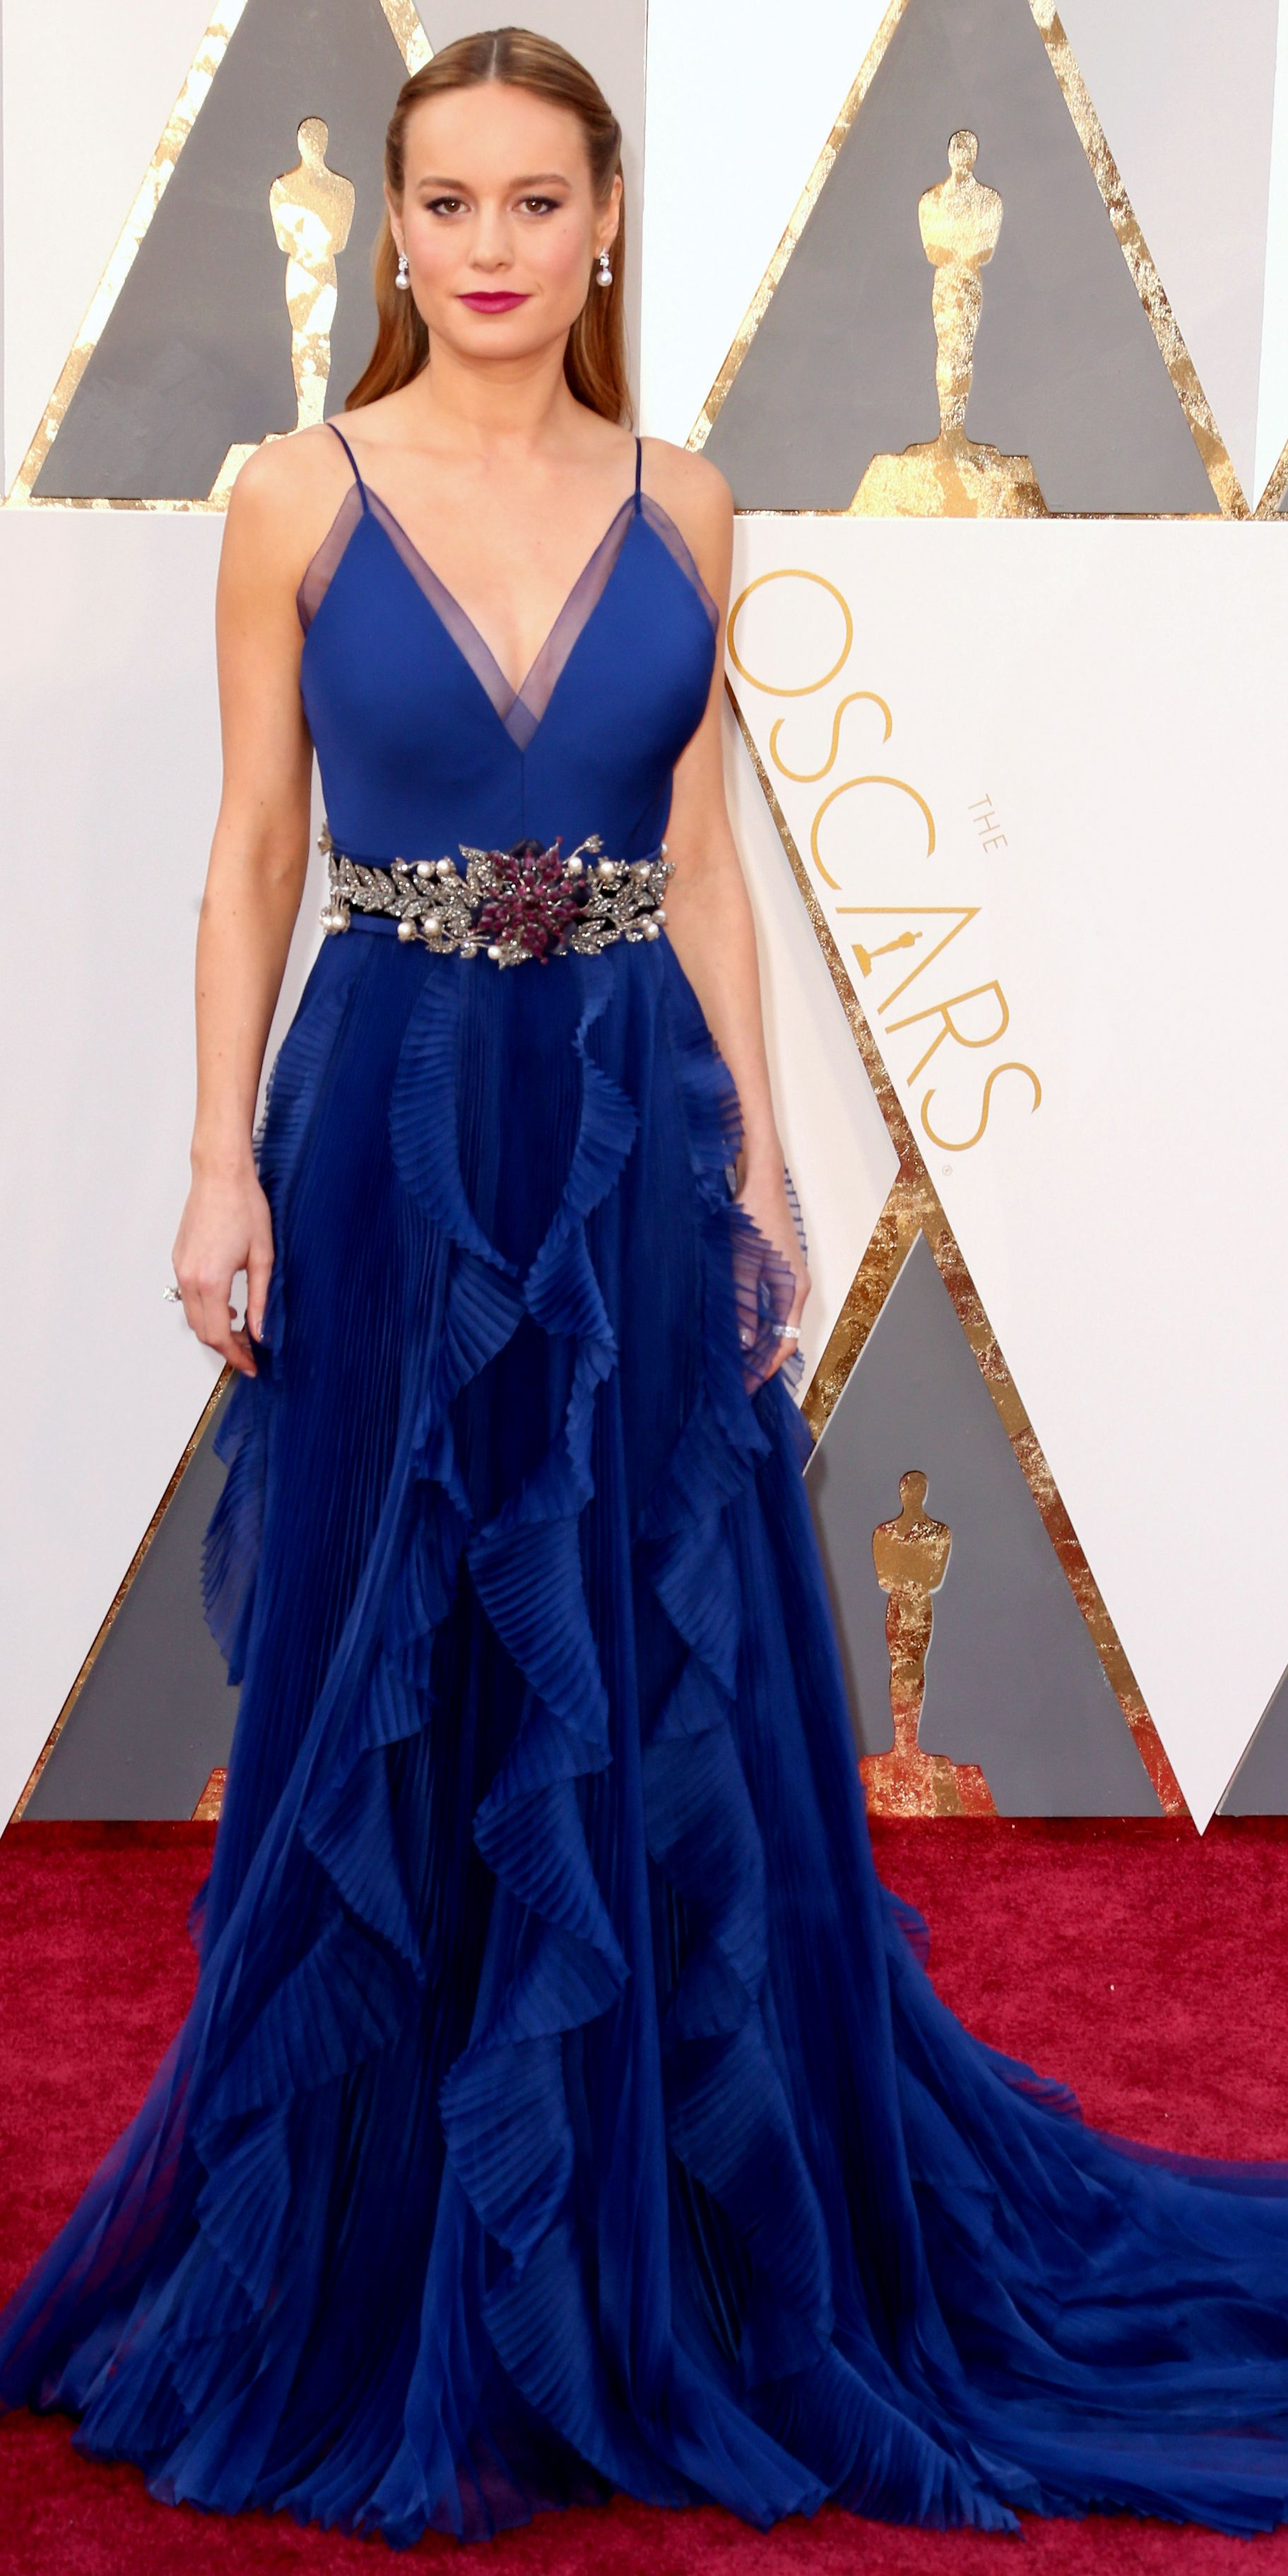 Our Top 10 Must Have Baby Items: Our Top 10 Best Dressed Women At The Oscars: Do You Agree